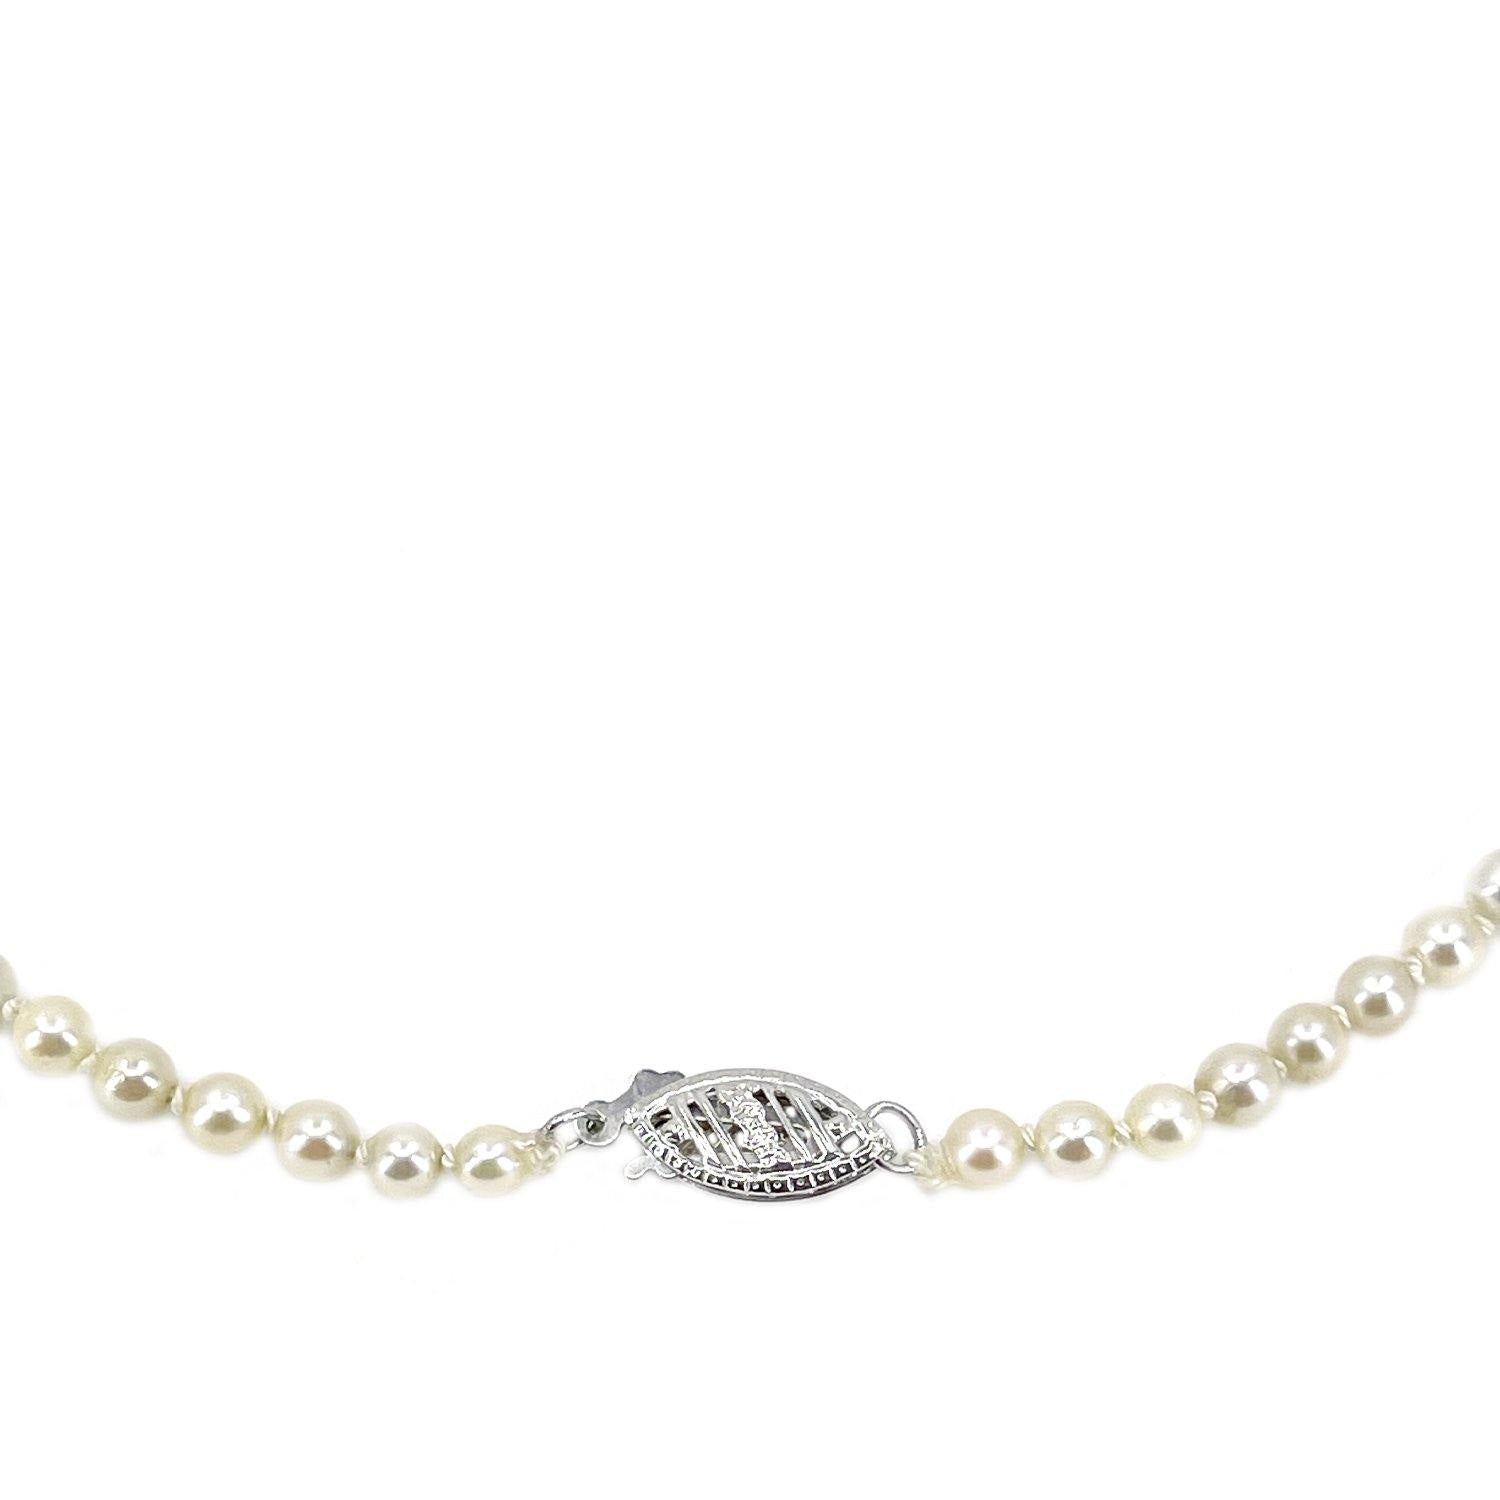 Retro Graduated Japanese Saltwater Cultured Akoya Pearl Filigree Necklace - 14K White Gold 20.25 Inch